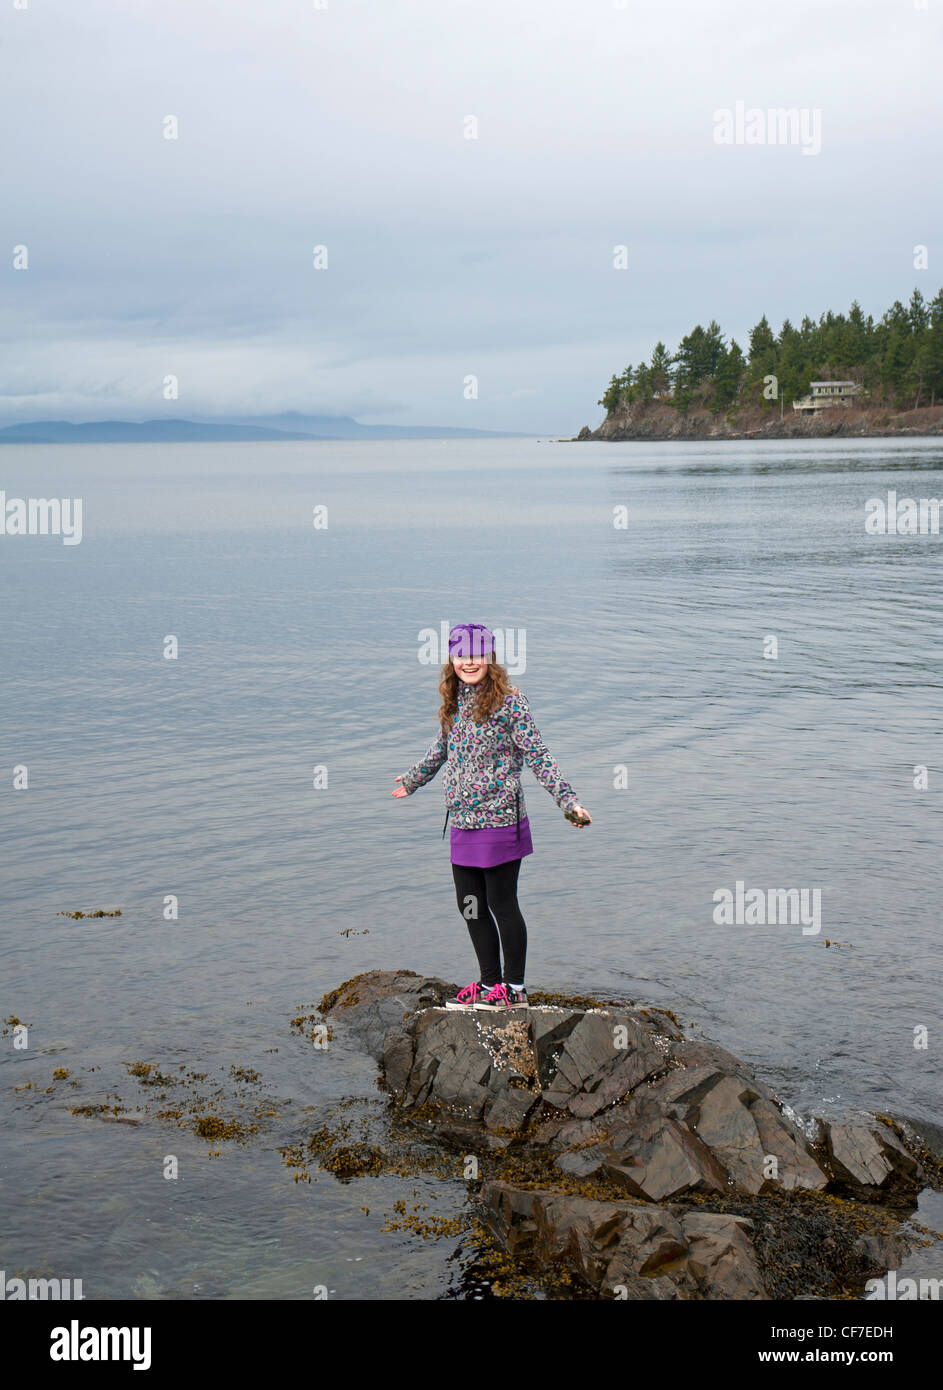 Young girl on the rocks by the seaside, Seacreast Nanoose. Vancouver Island. British Columbia. Canada. SCO 8065 - Stock Image